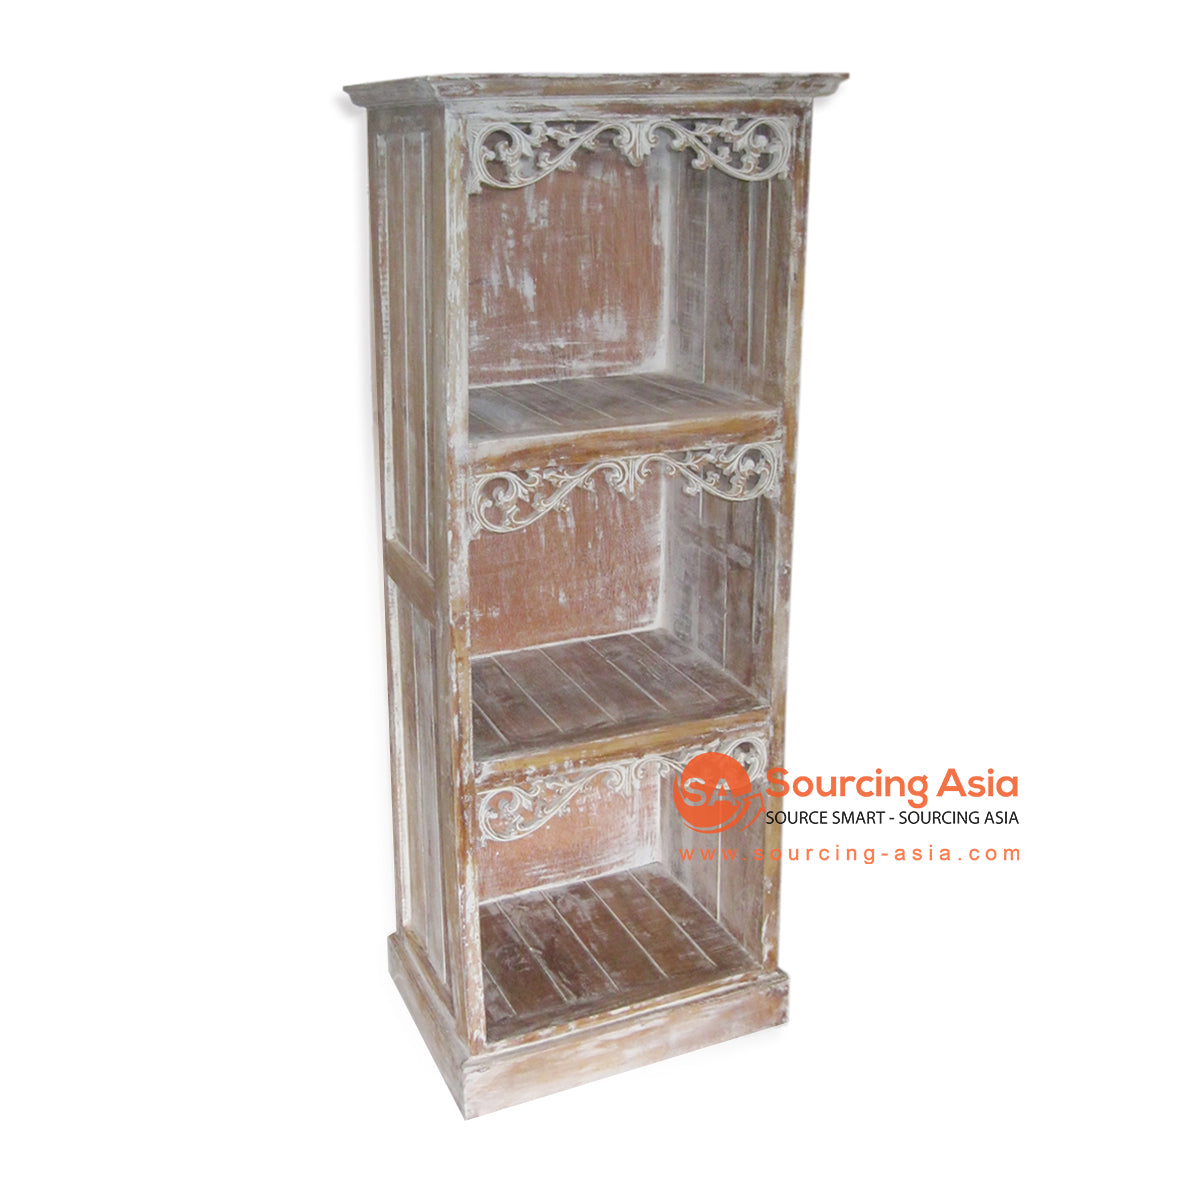 THE051-1 BOOK RACK WITH 3 SHELF BROWN WASH